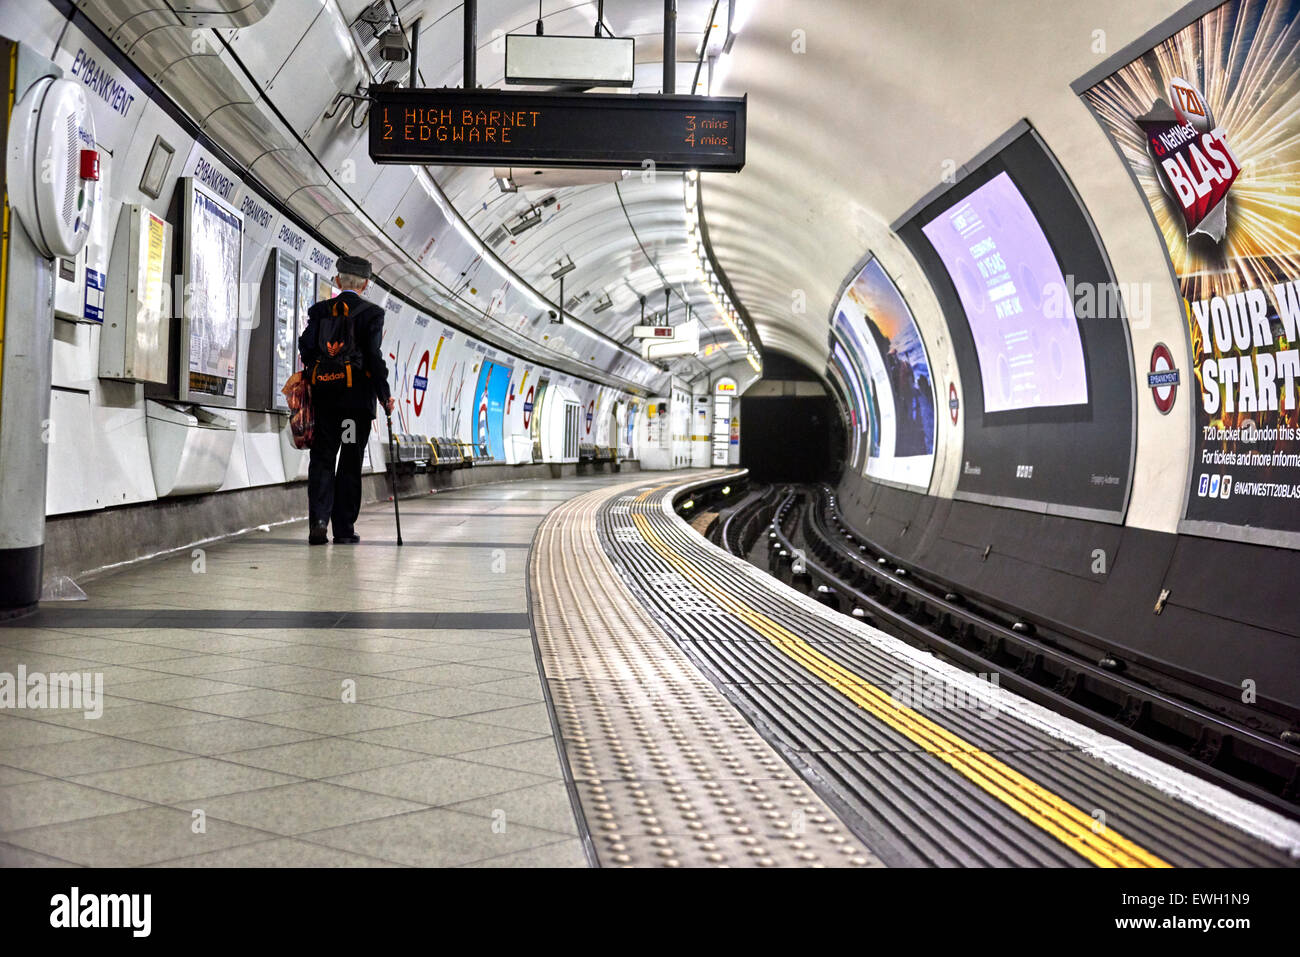 Embankment is a London Underground station in the City of Westminster, known by various names during its history. - Stock Image